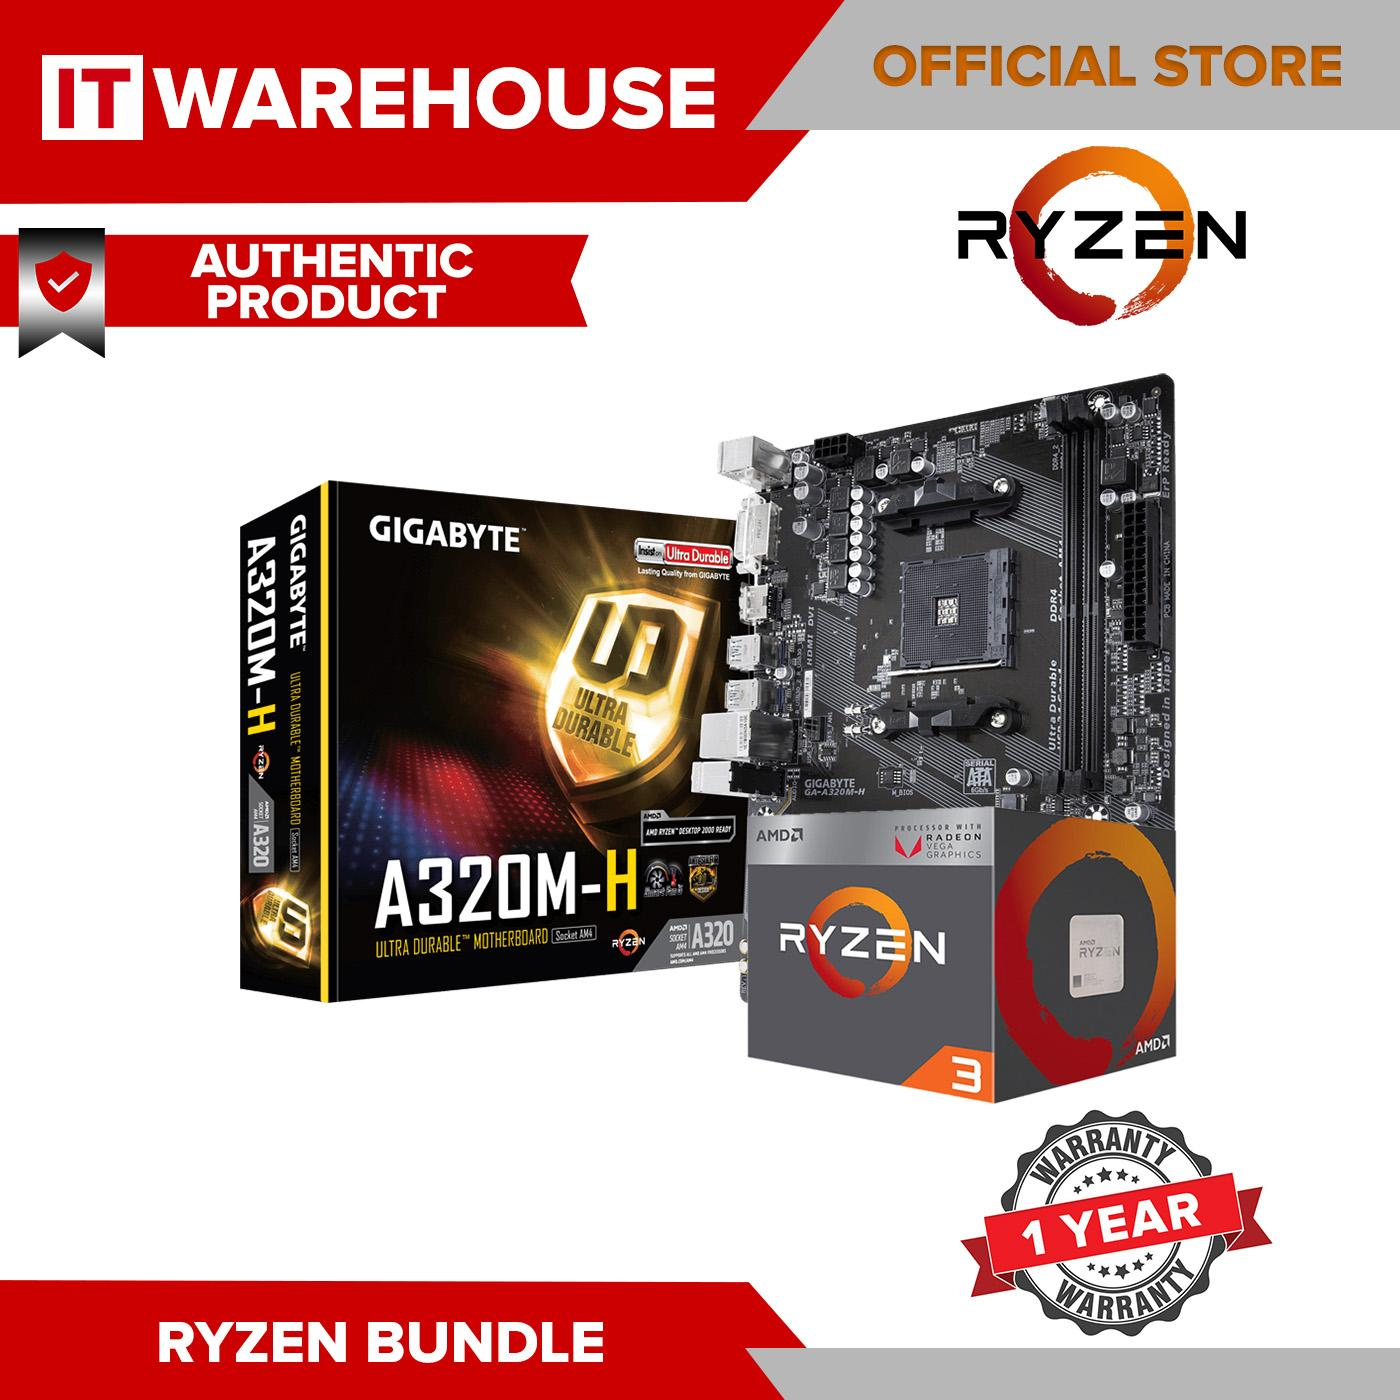 Amd Ryzen 3 2200G Processor Socket Am4 3 5ghz with Radeon Vega 8, Ryzen3  2nd Gen APU, Best Seller for iCafe, Gamers, Graphic Artist with Built in